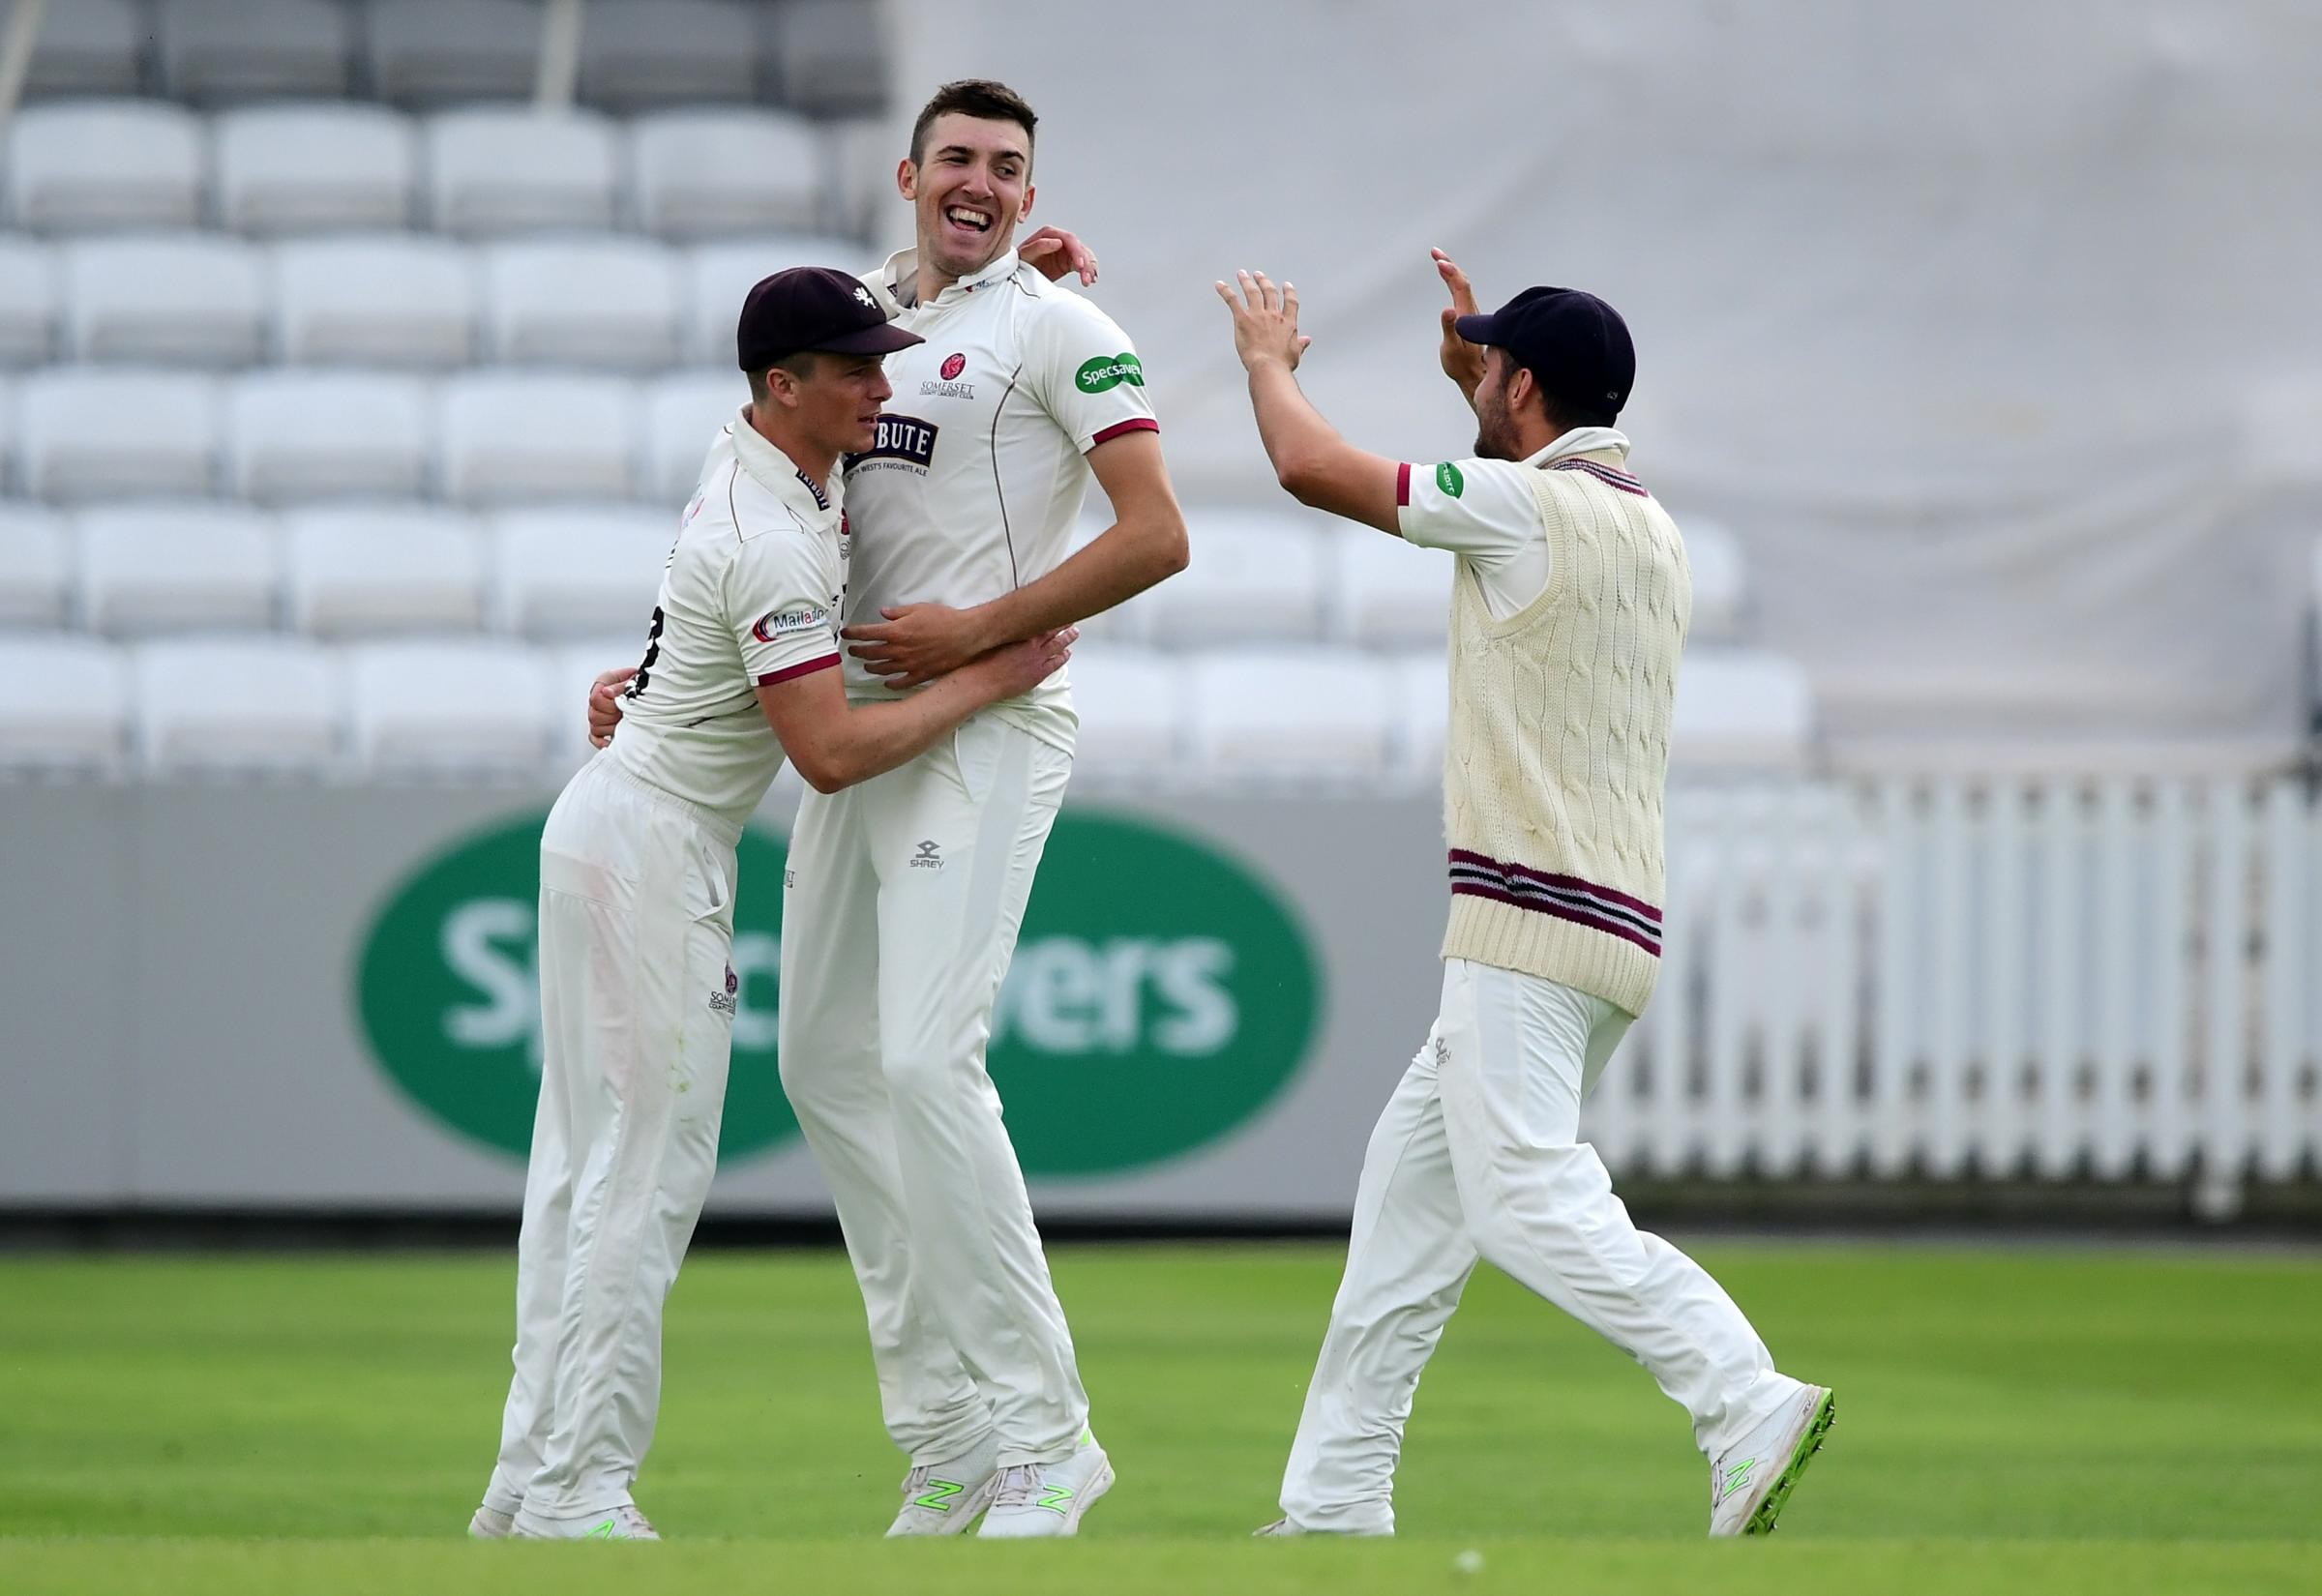 HAT-TRICK: Craig Overton (centre) claimed three wickets in as many balls against Notts - just a day after Tom Abell (left) had done the same. Pic: Alex Davidson/SCCC